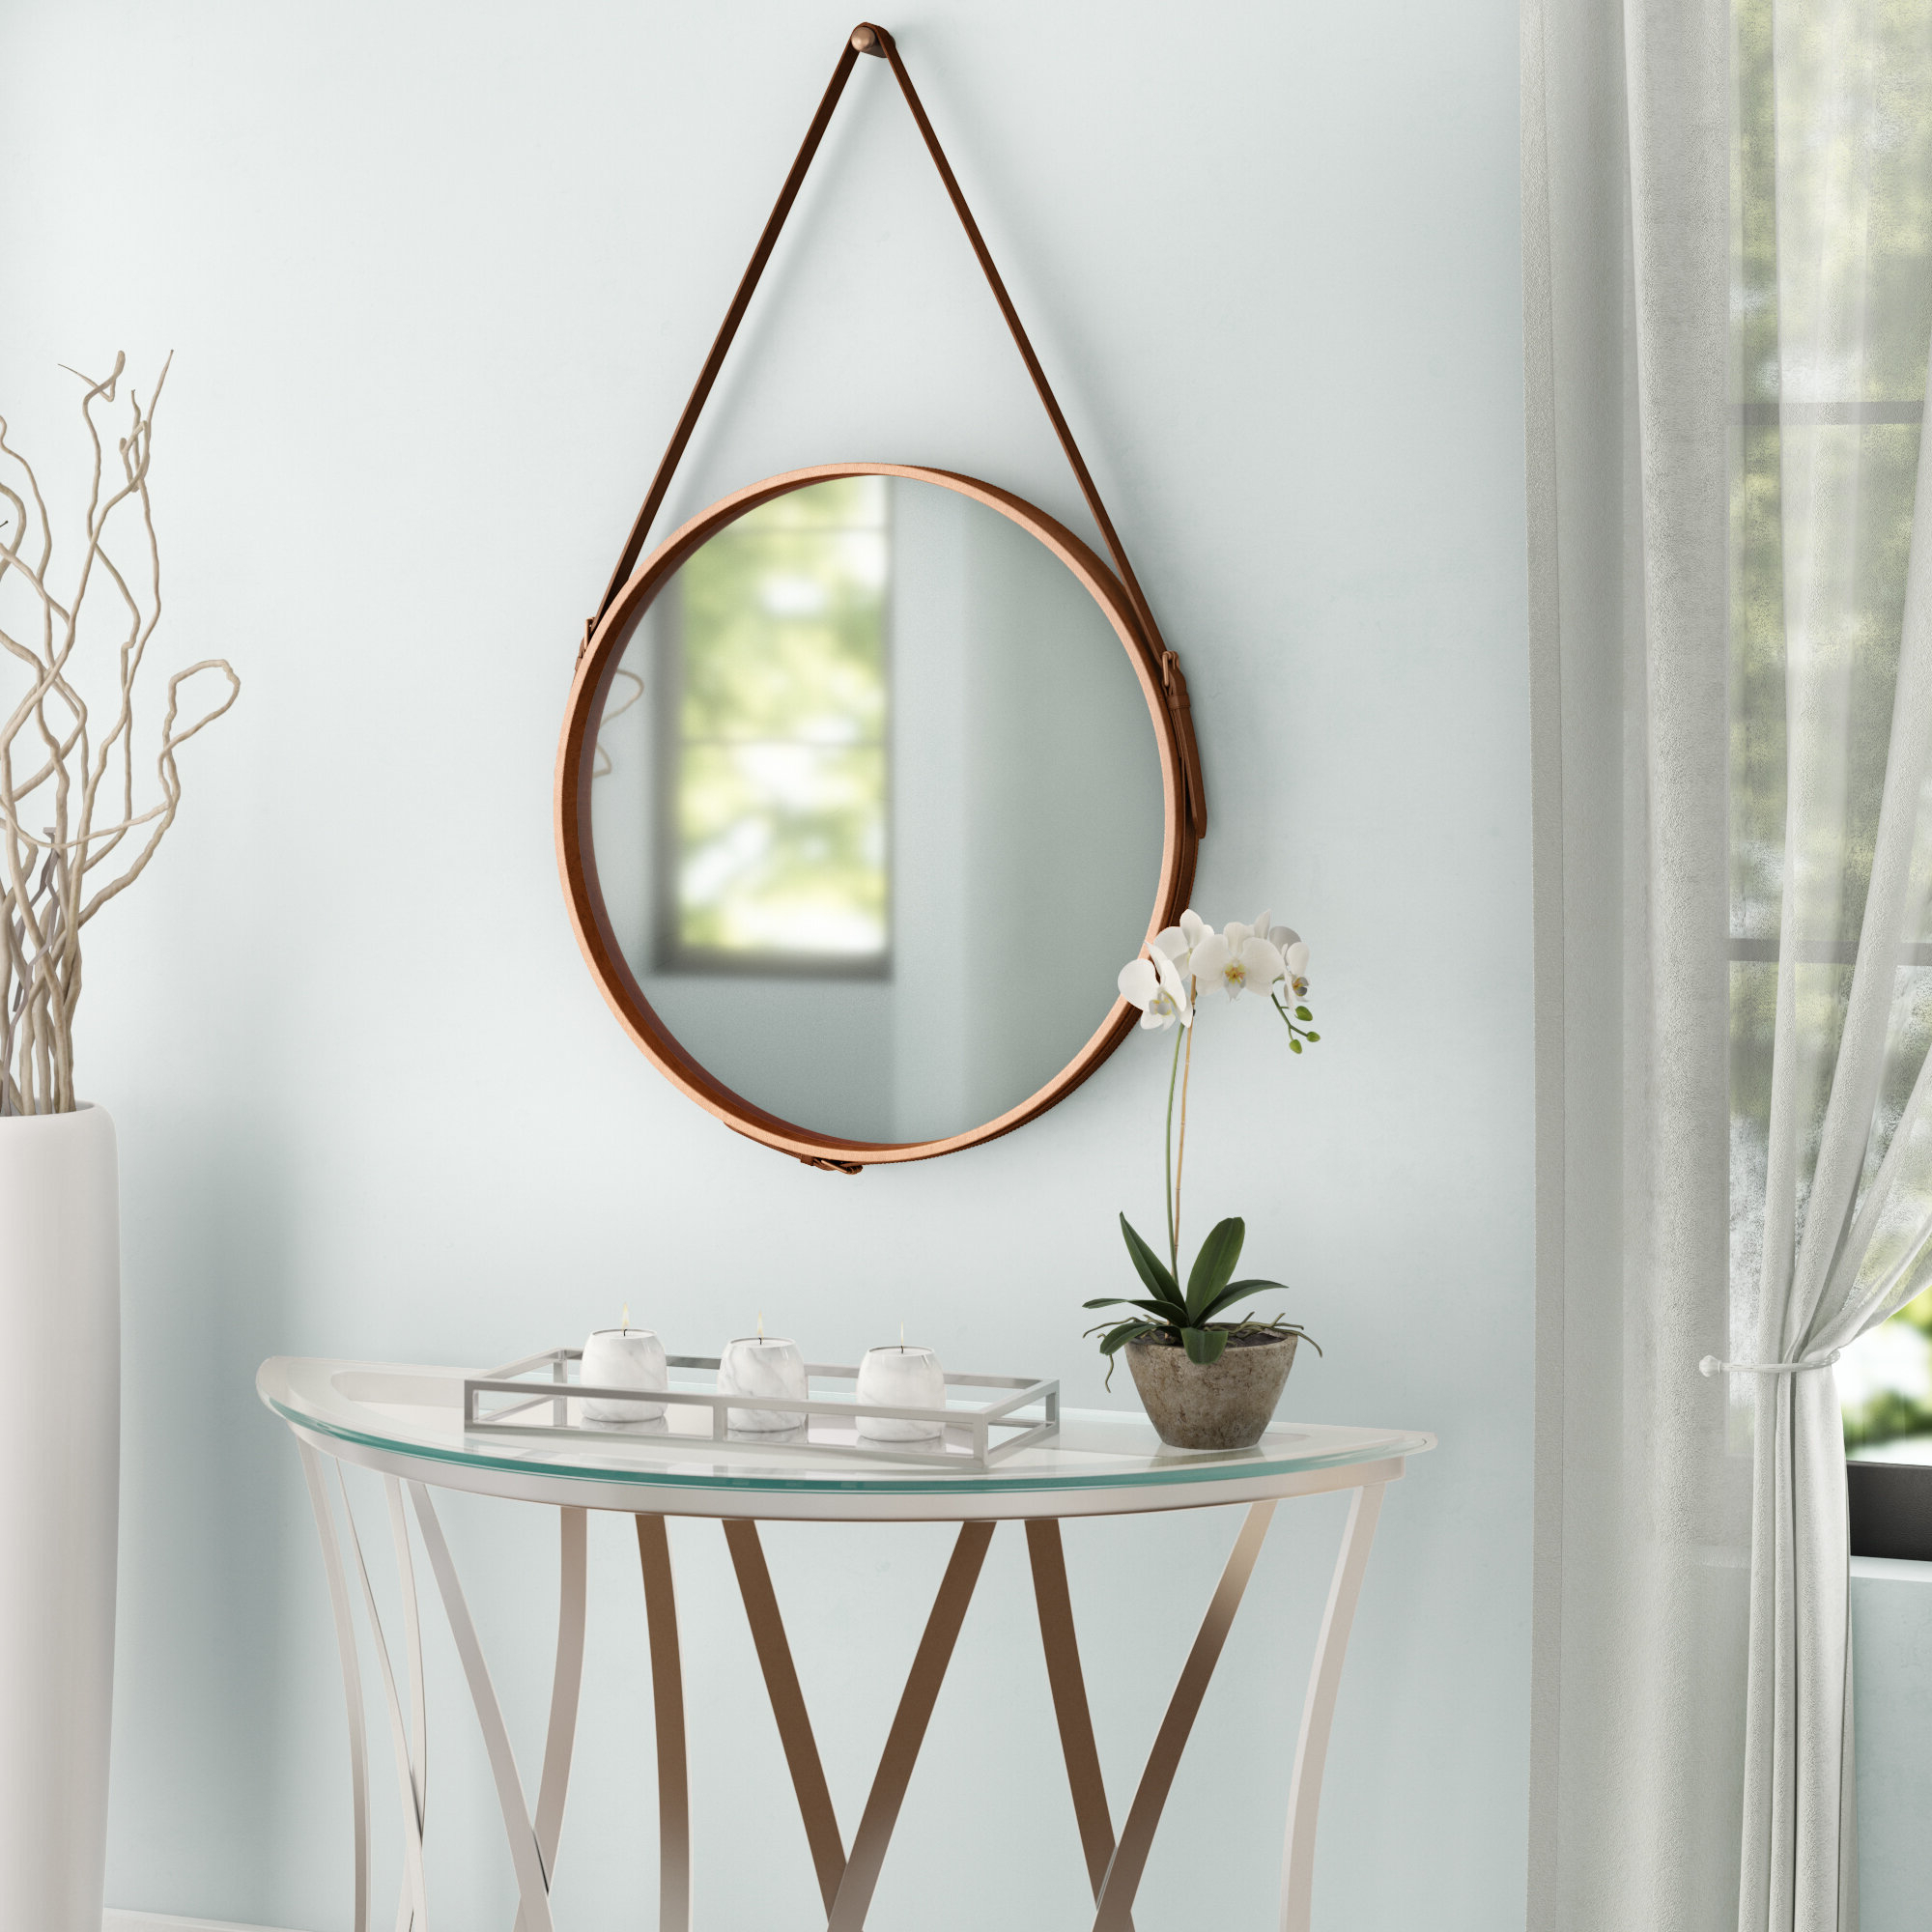 Famous Bombay Distressed Vertical Round Wall Mirror For Vertical Round Wall Mirrors (View 3 of 20)